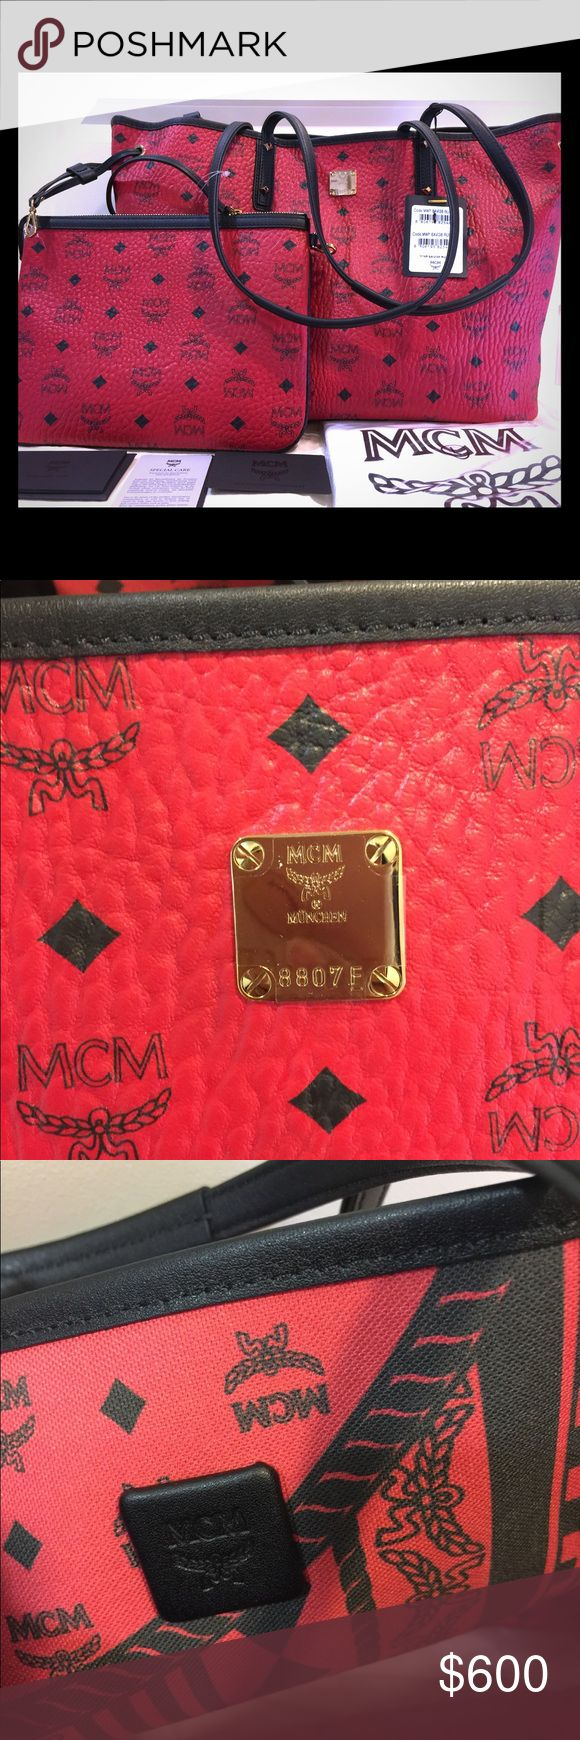 MCM Shopper Project Visetos Reversible Medium Tote 💯% Authentic MCM Shopper Project Visetos Reversible Medium Tote Bag. The bag come with pouch, care card, certificate card and dust bag. Brand new!!! MCM Bags Totes